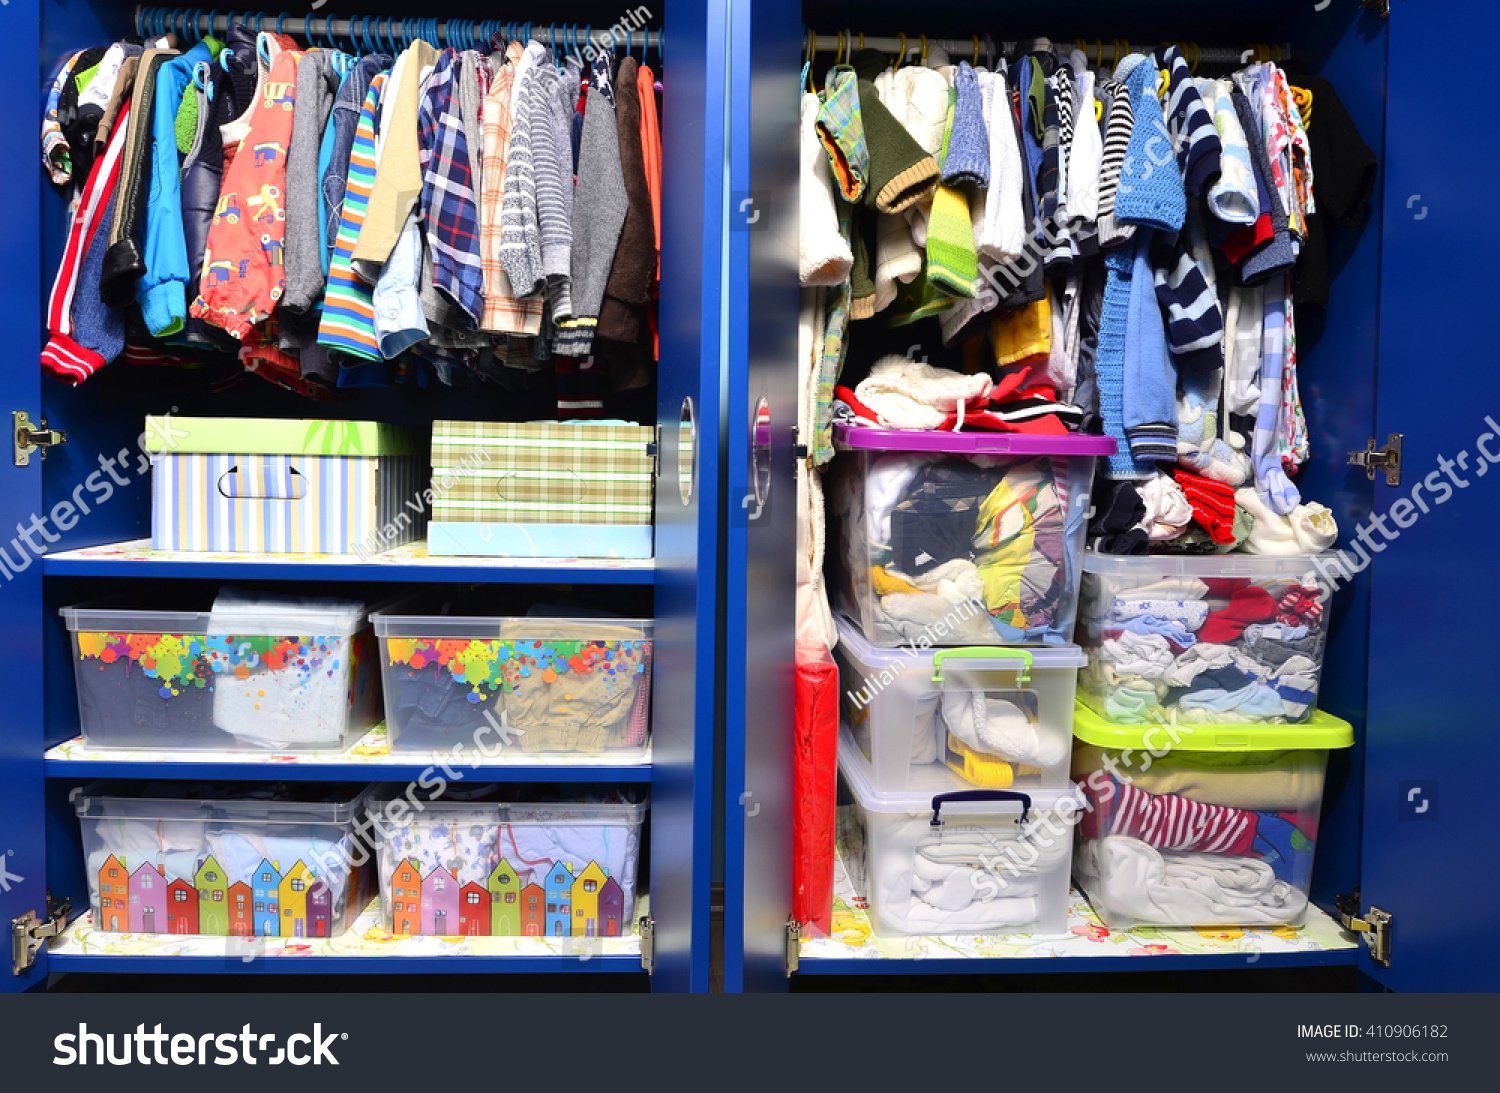 Dressing Closet For Kids With Clothes Arranged On Hangers.Colorful Wardrobe  Of Newborn,kids